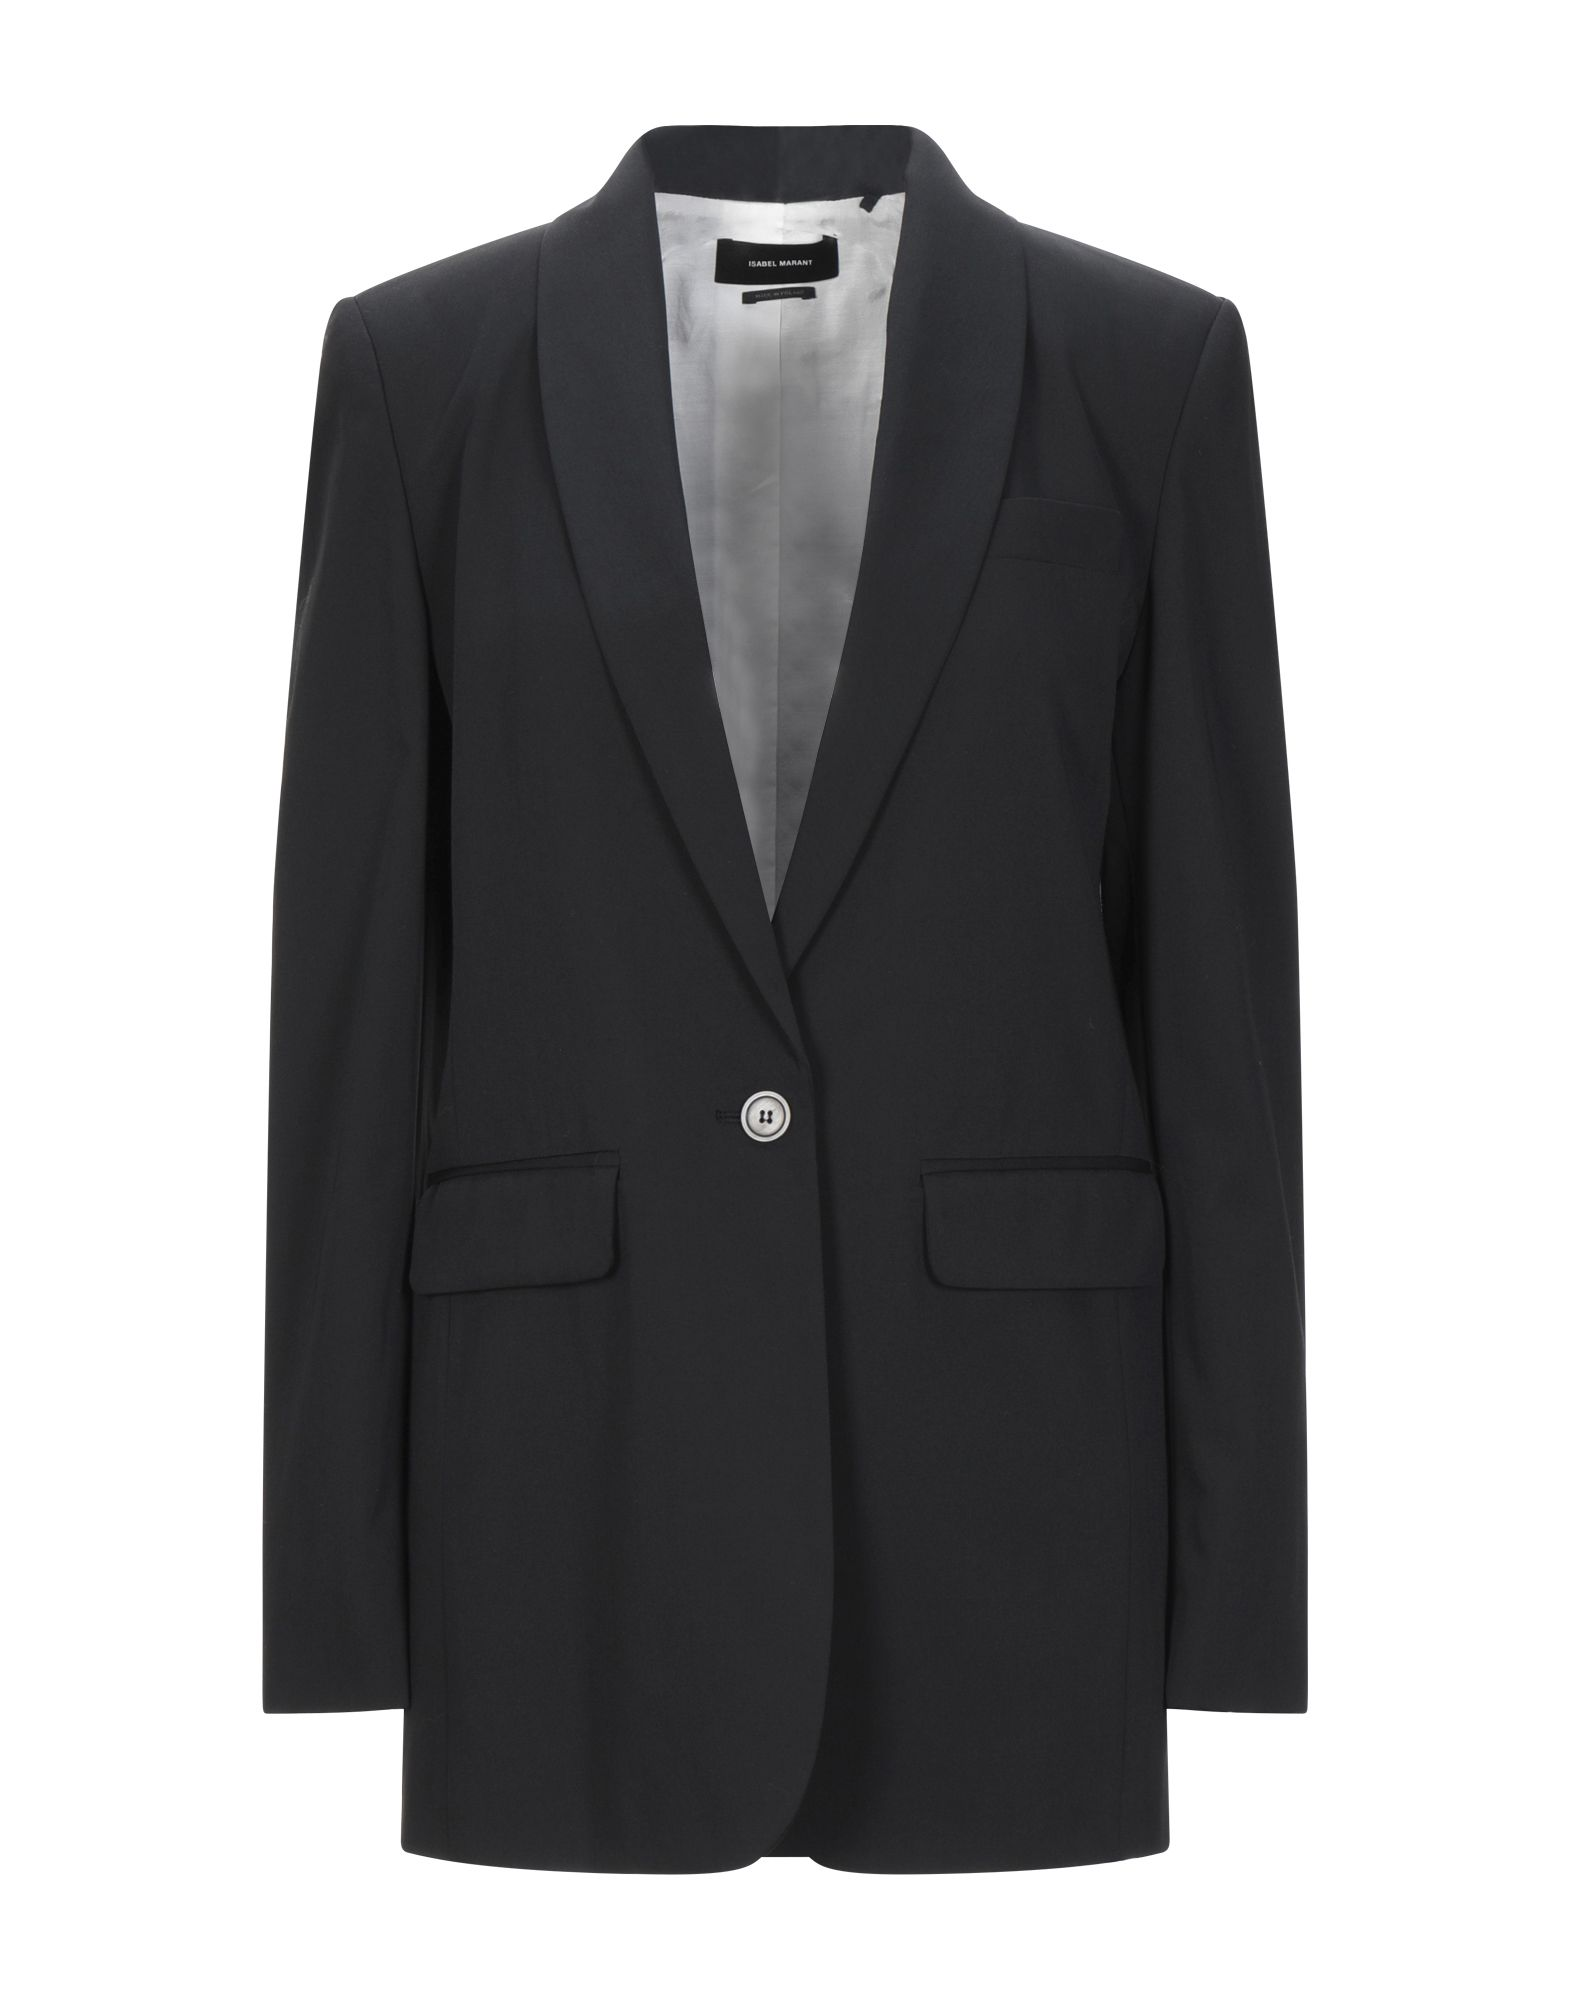 ISABEL MARANT Suit jackets. cool wool, solid color, multipockets, single chest pocket, 1 button, lapel collar, single-breasted, long sleeves, fully lined, back split. 100% Virgin Wool